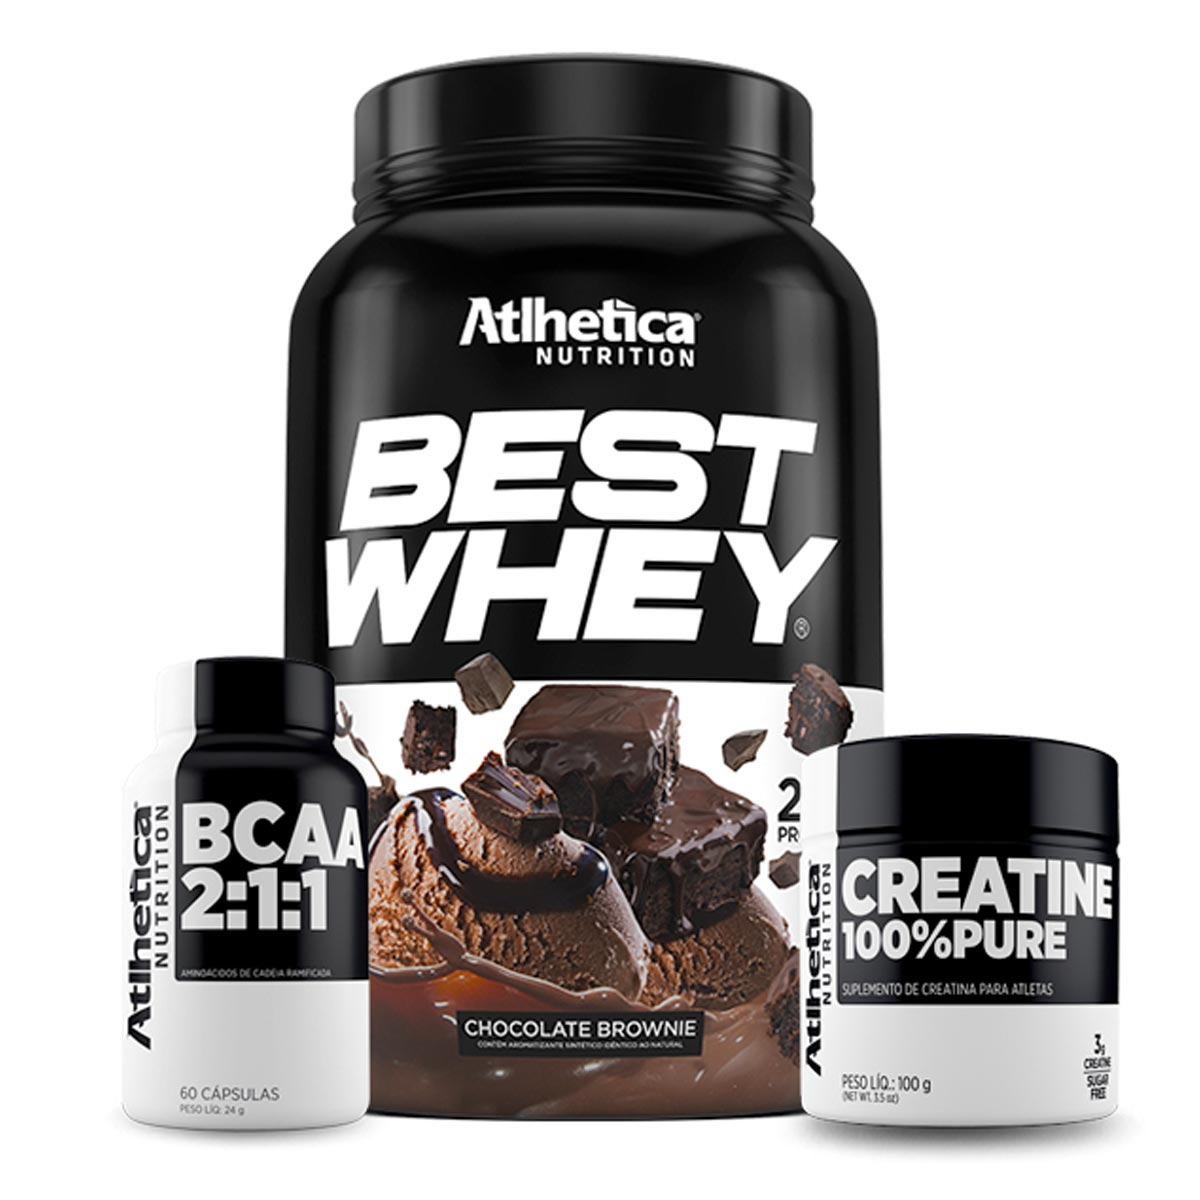 Kit Best Whey 900g + BCAA + Creatina Atlhetica Nutrition